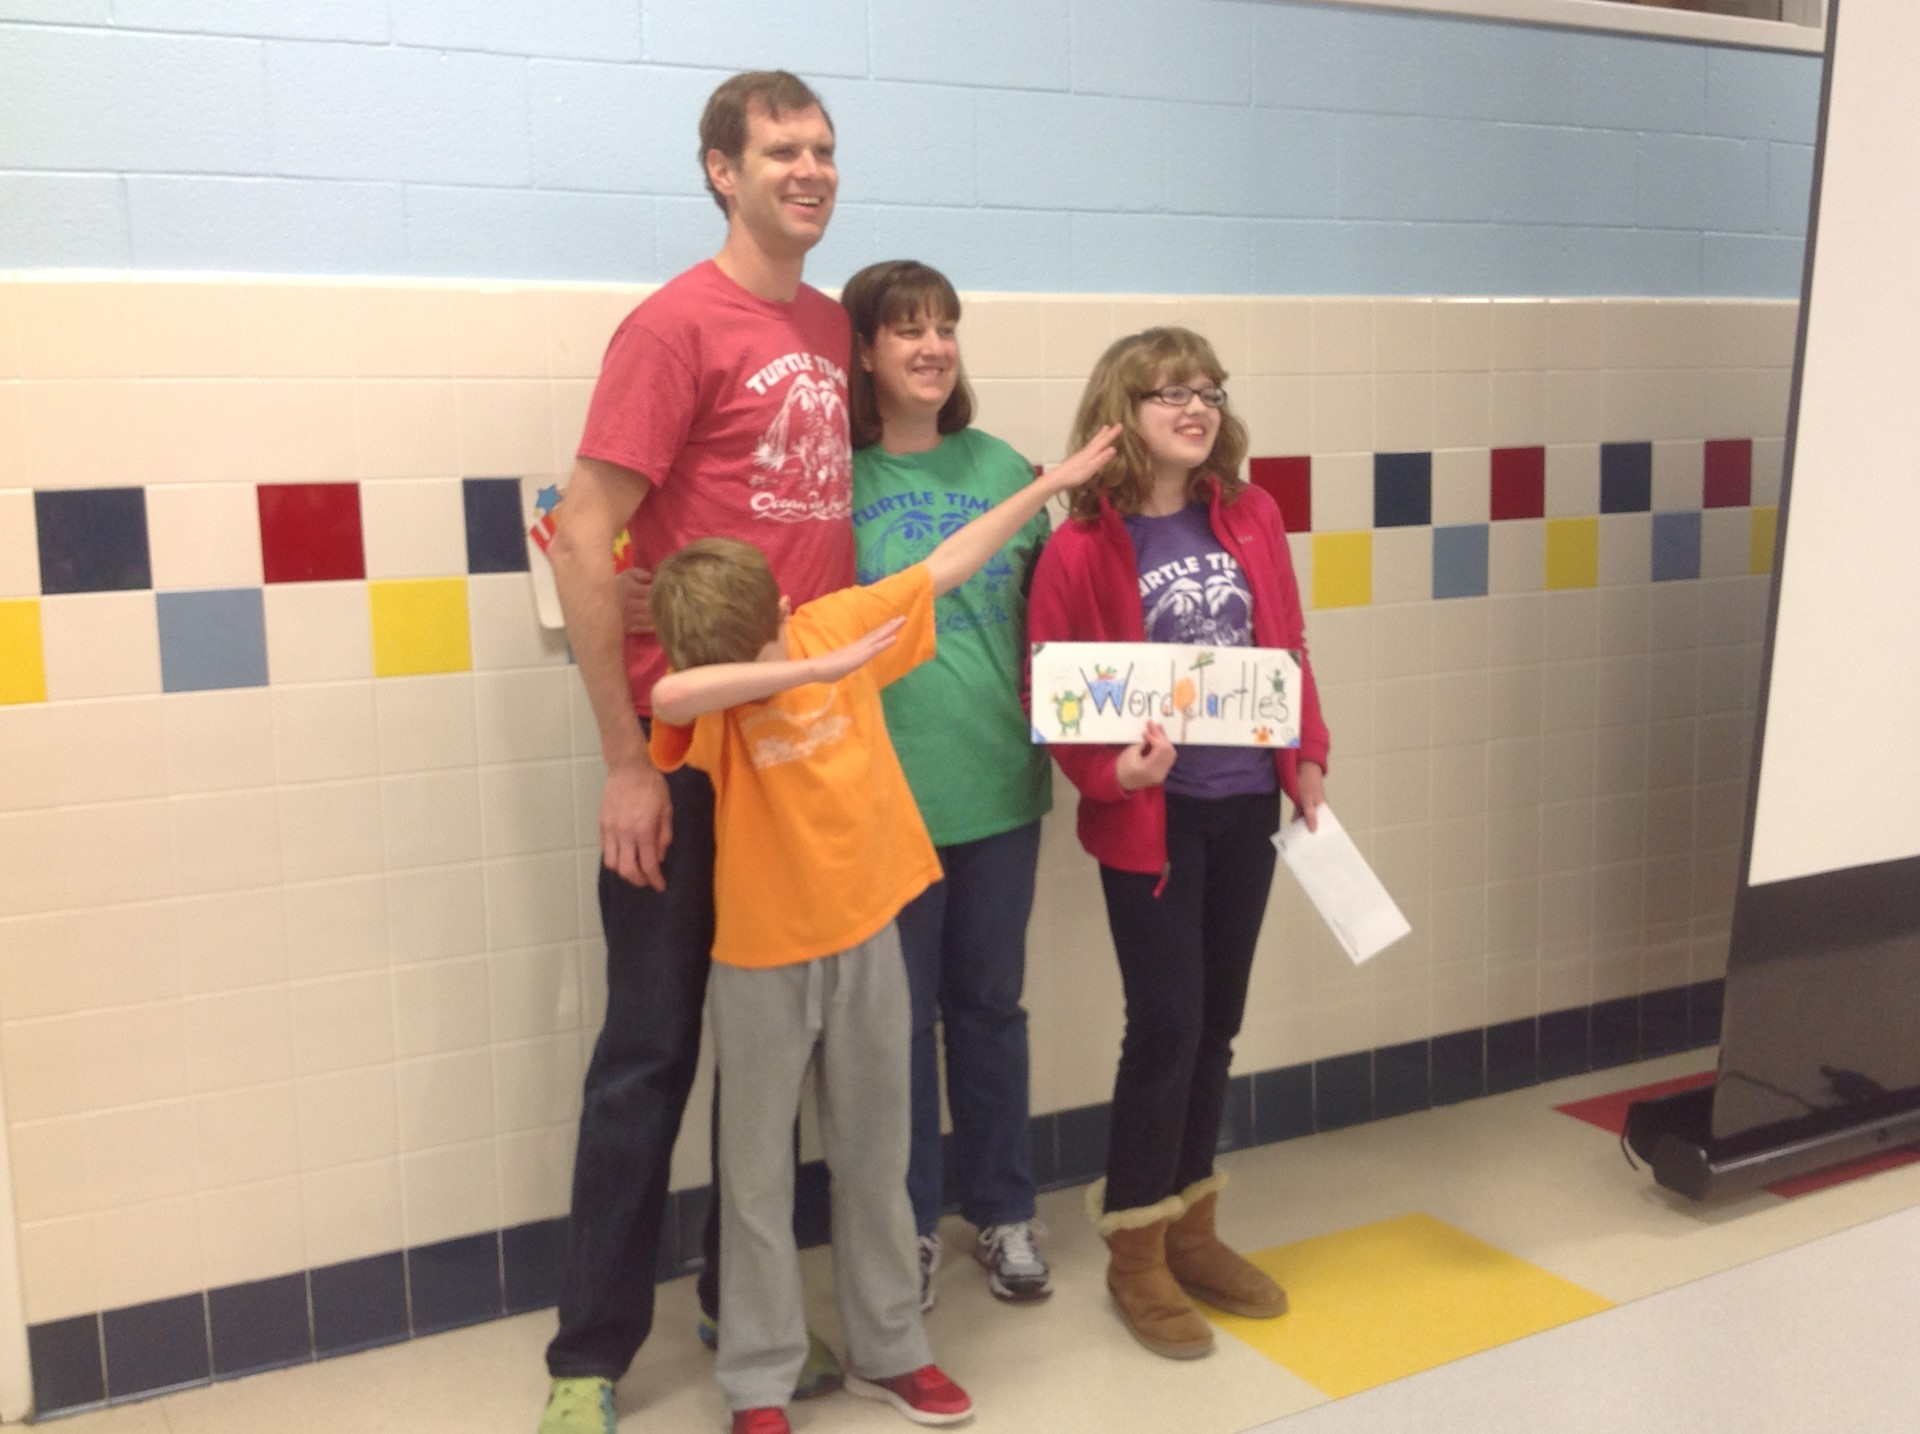 2nd Place Winners of Battle of the Books: Word Turtles